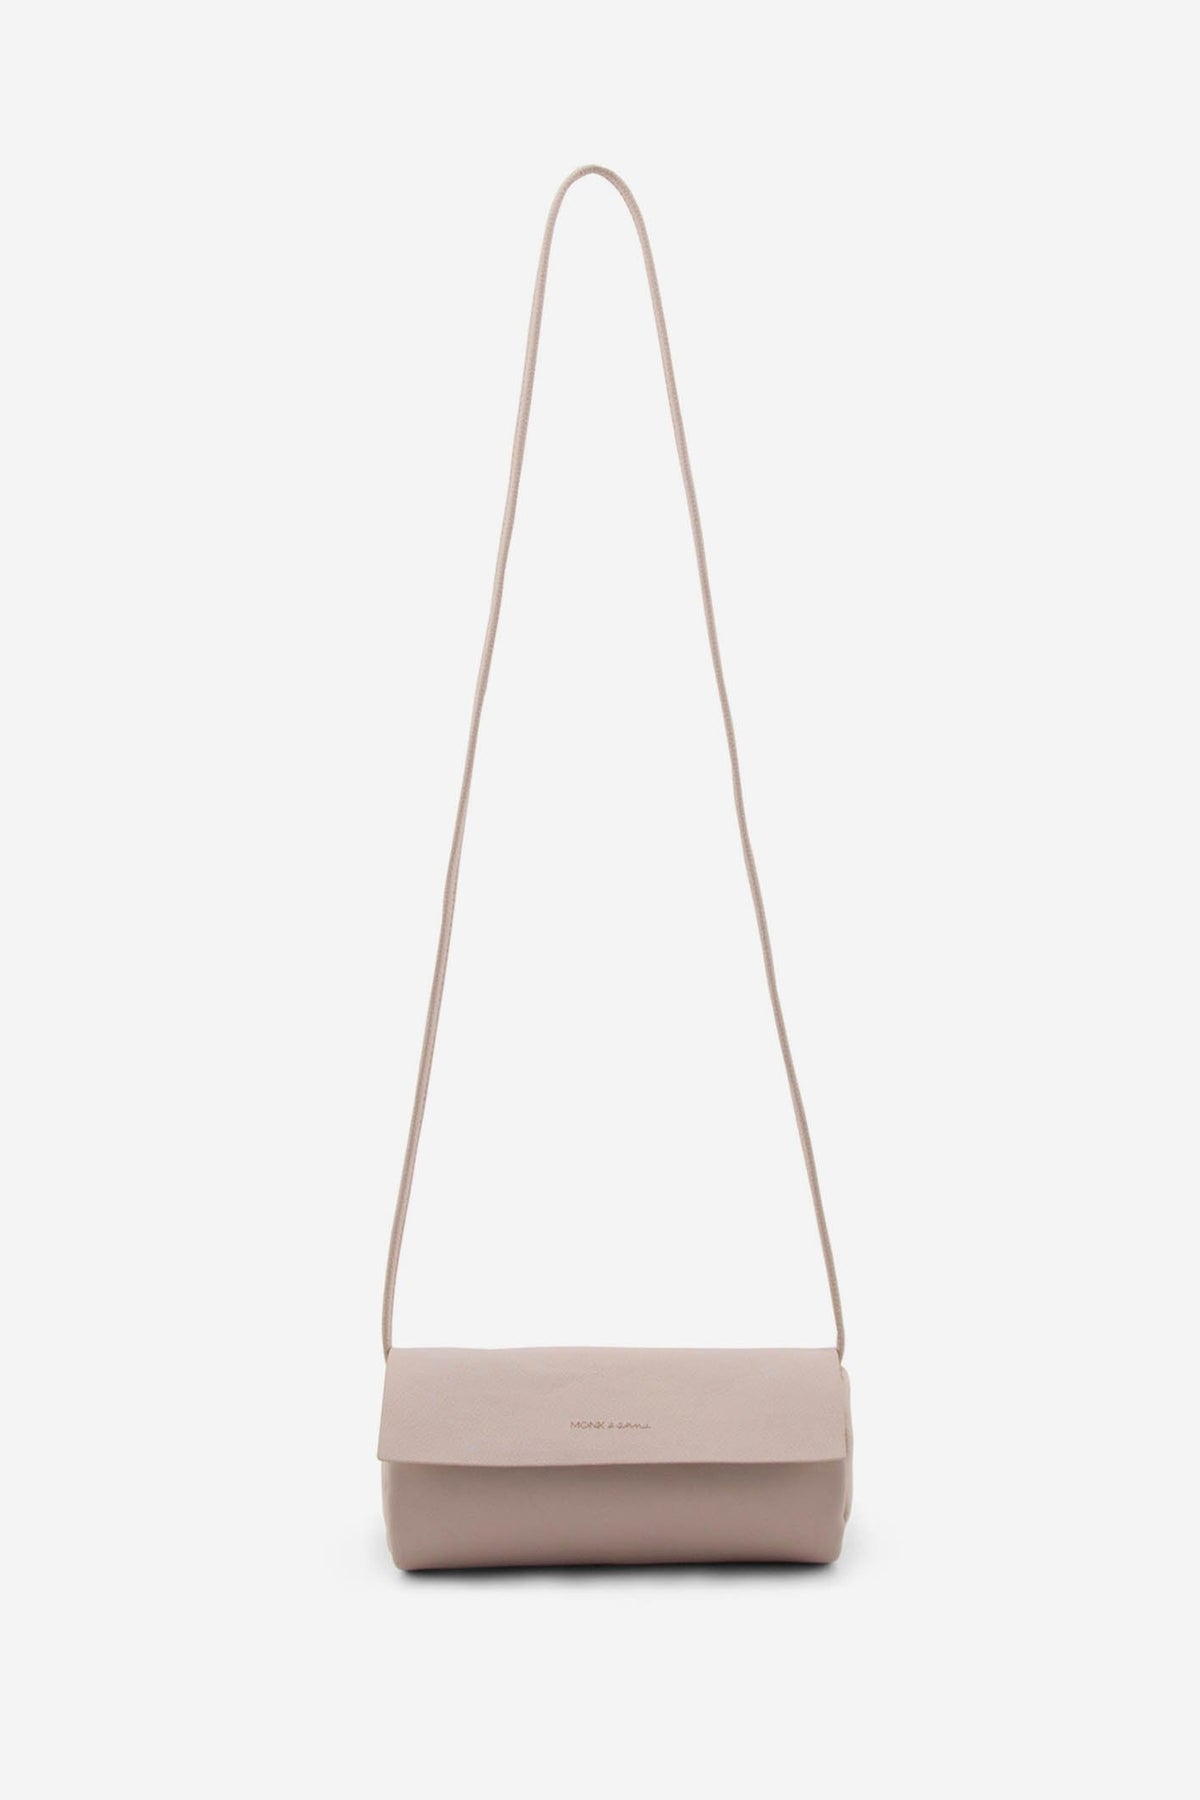 Jugoya Full Moon Bag Nude